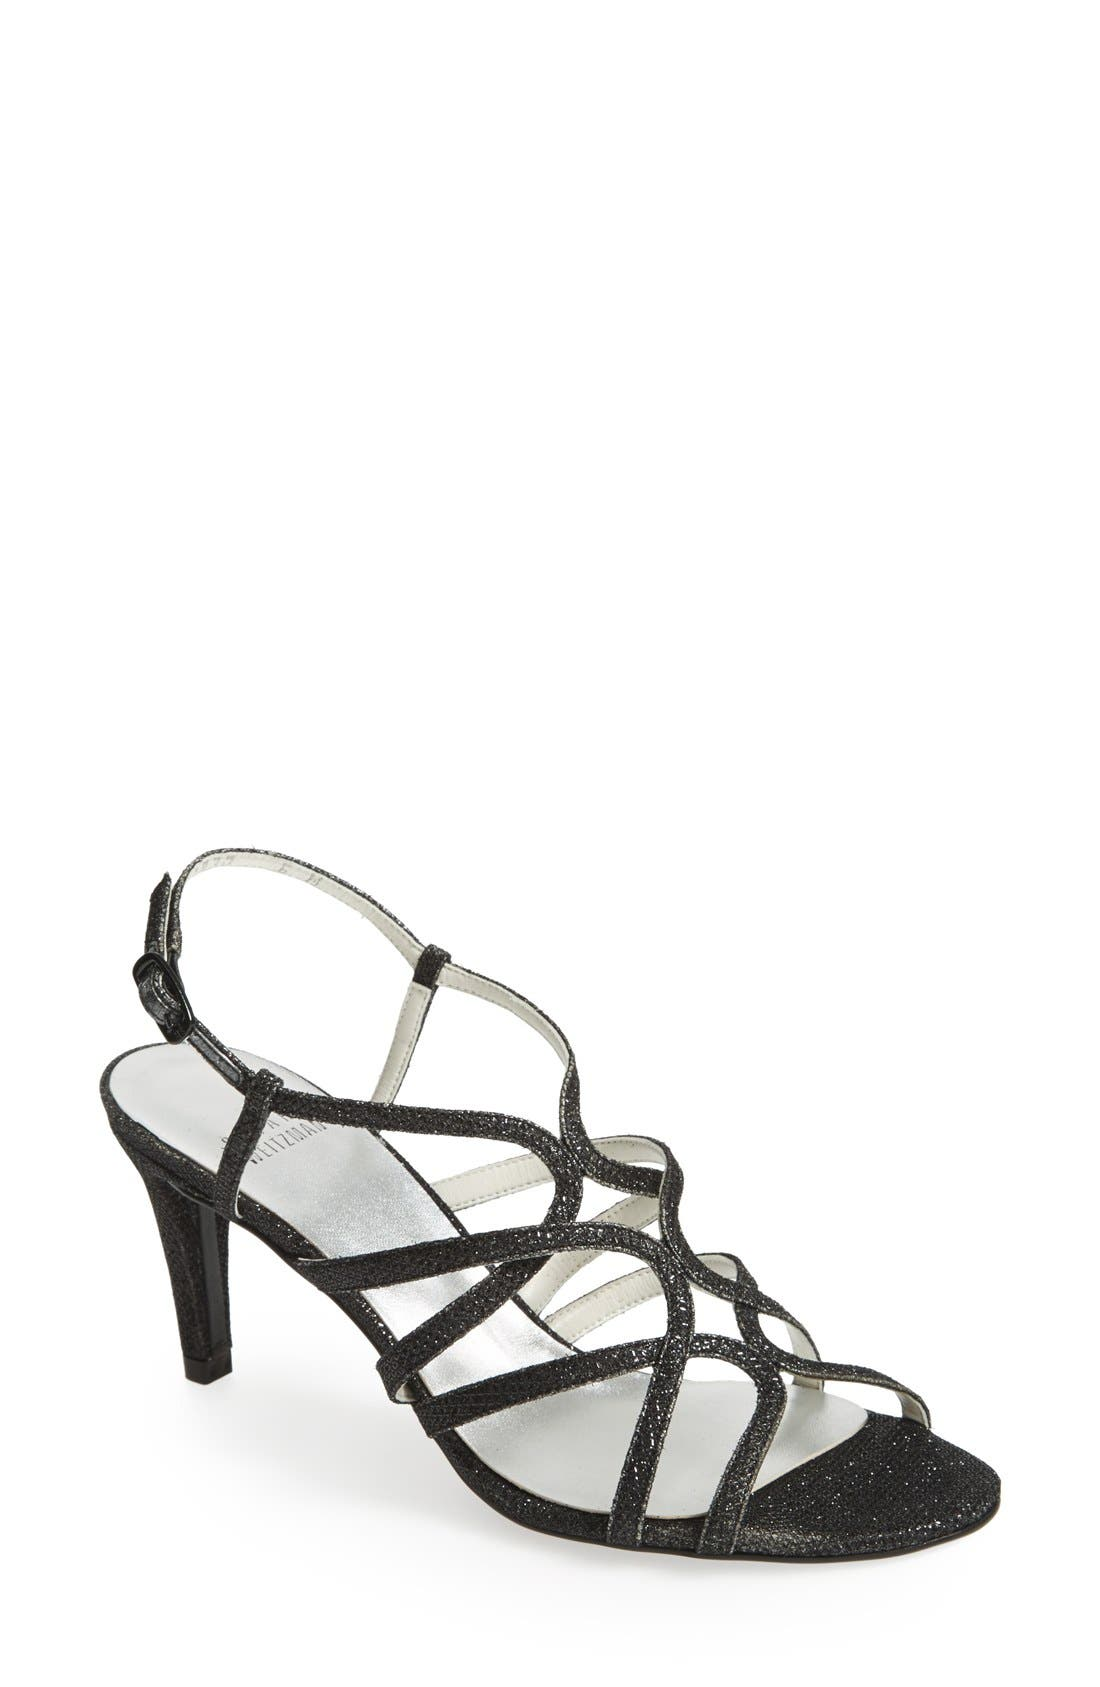 'Turningup' Sandal,                         Main,                         color, 004